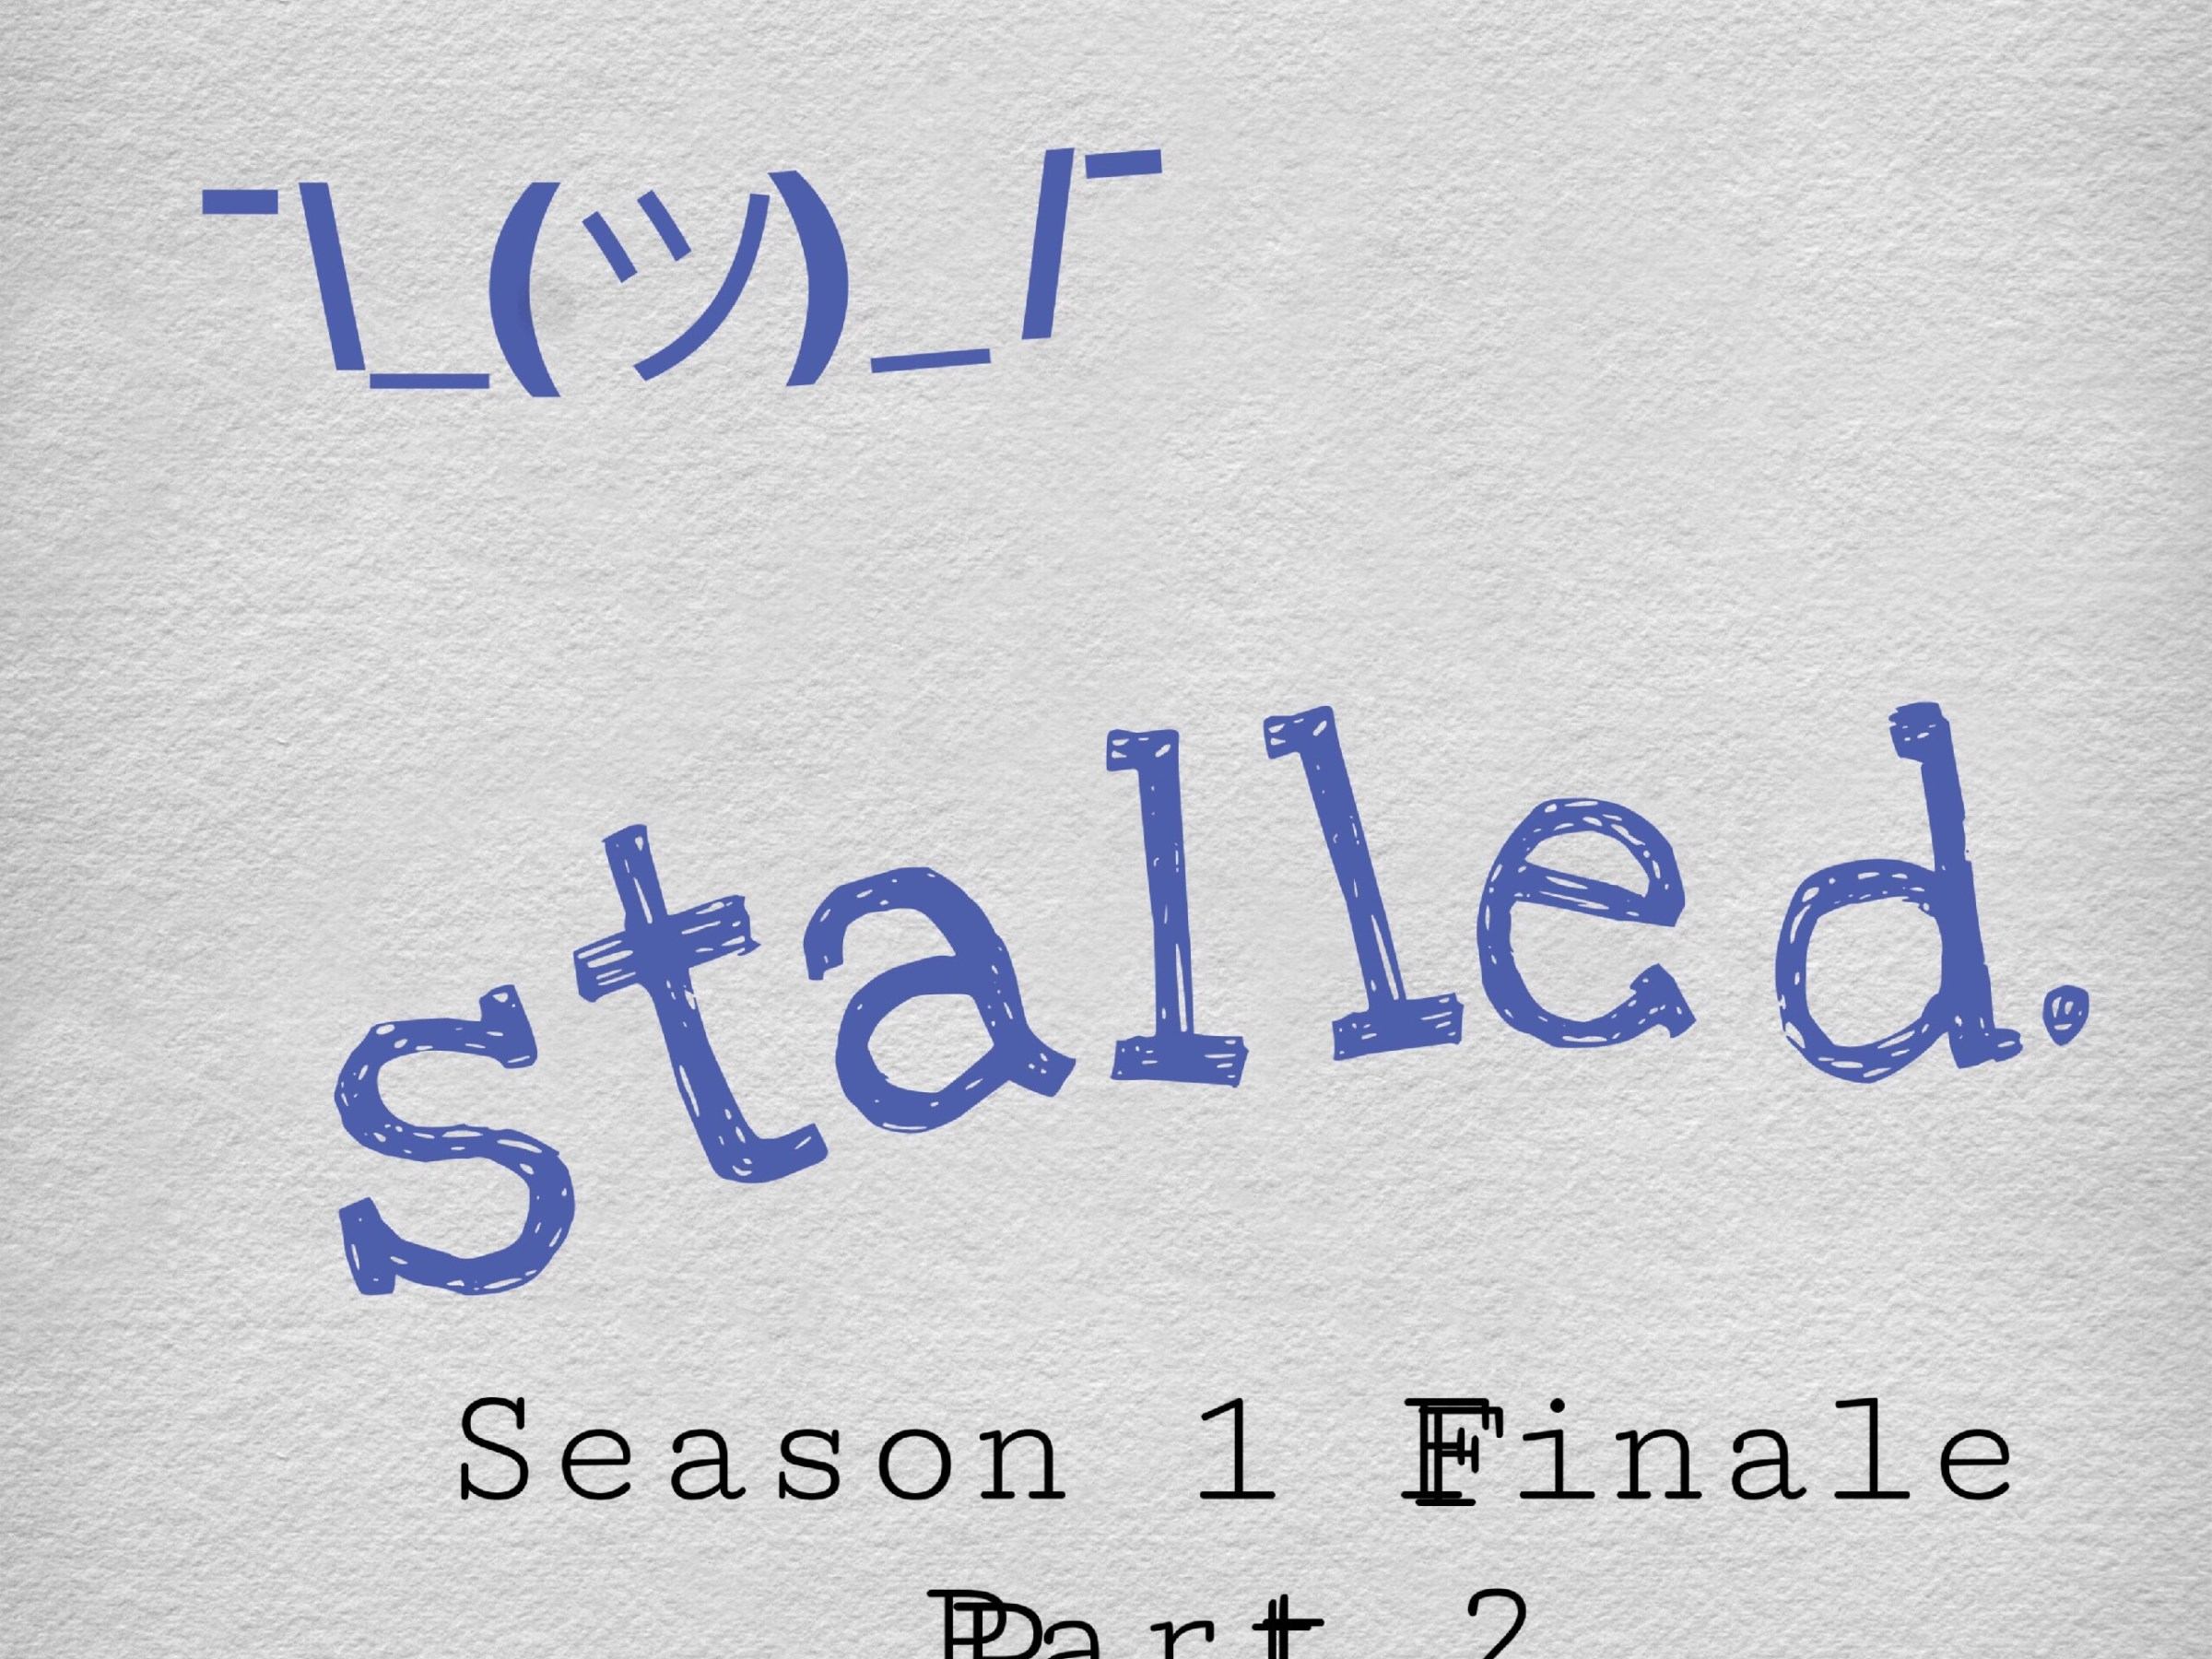 Stalled podcast season 1 finale